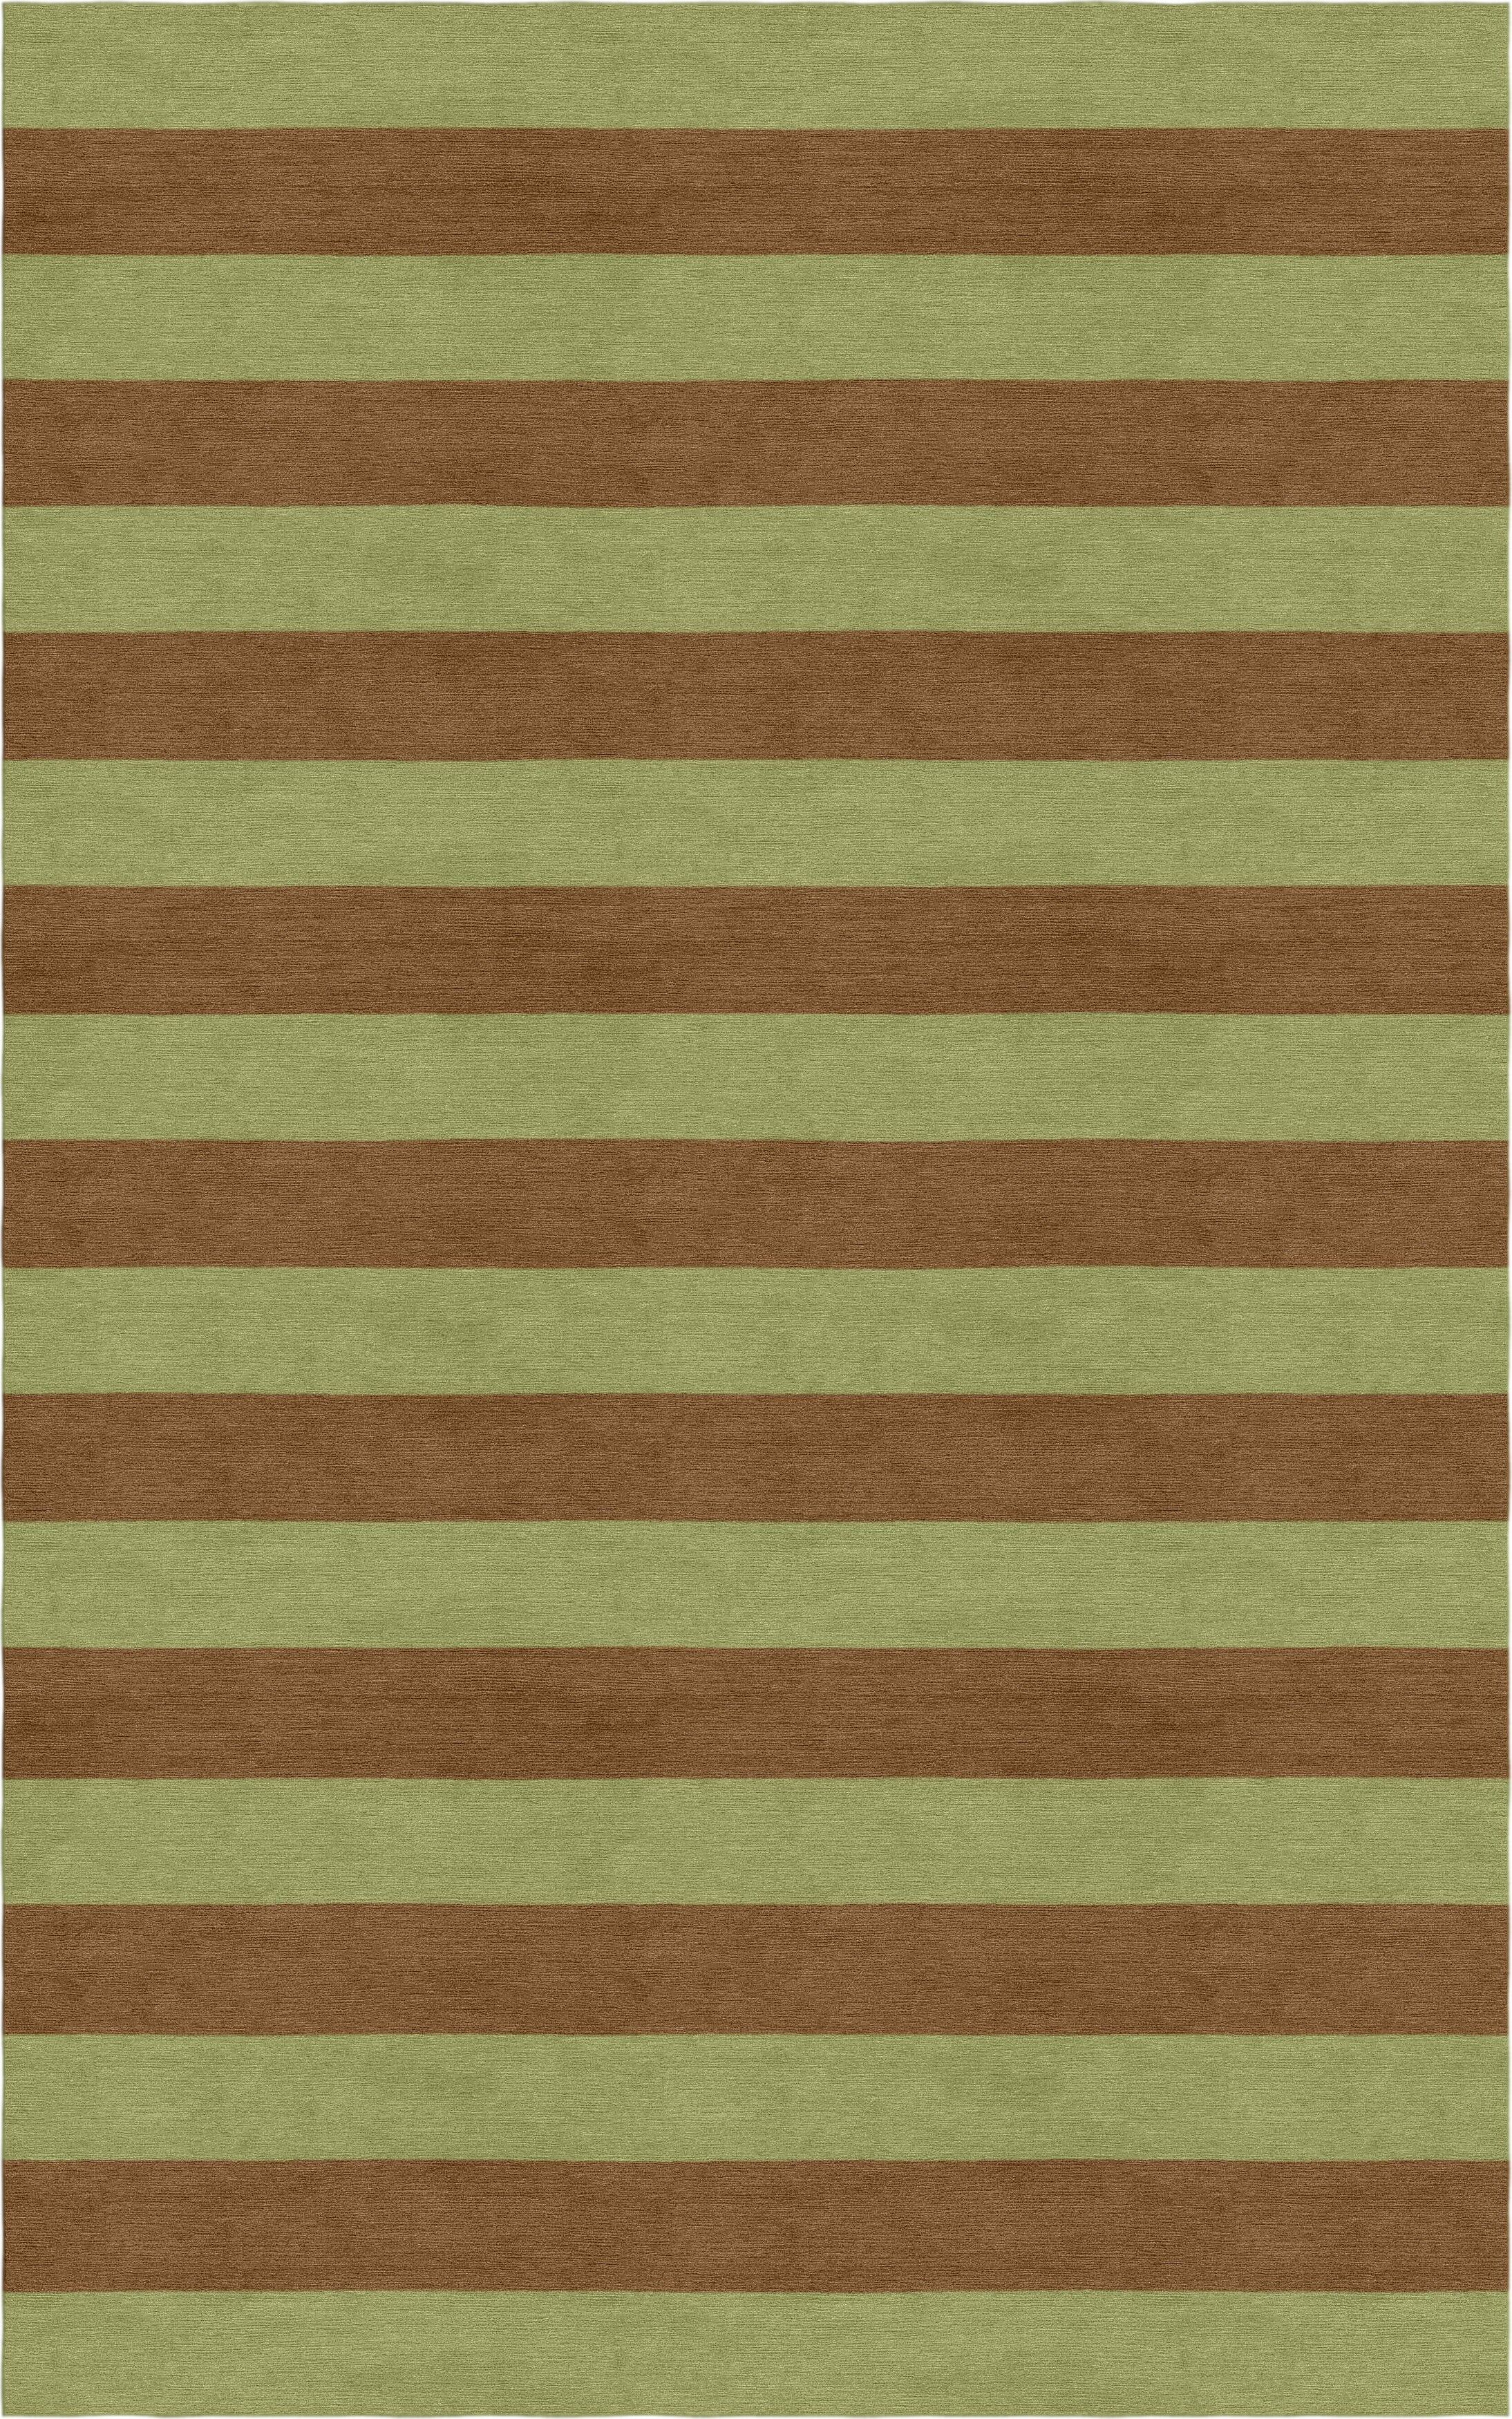 Shoemake Stripe Hand-Tufted Wool Olive/Brown Area Rug Rug Size: Rectangle 6' x 9'